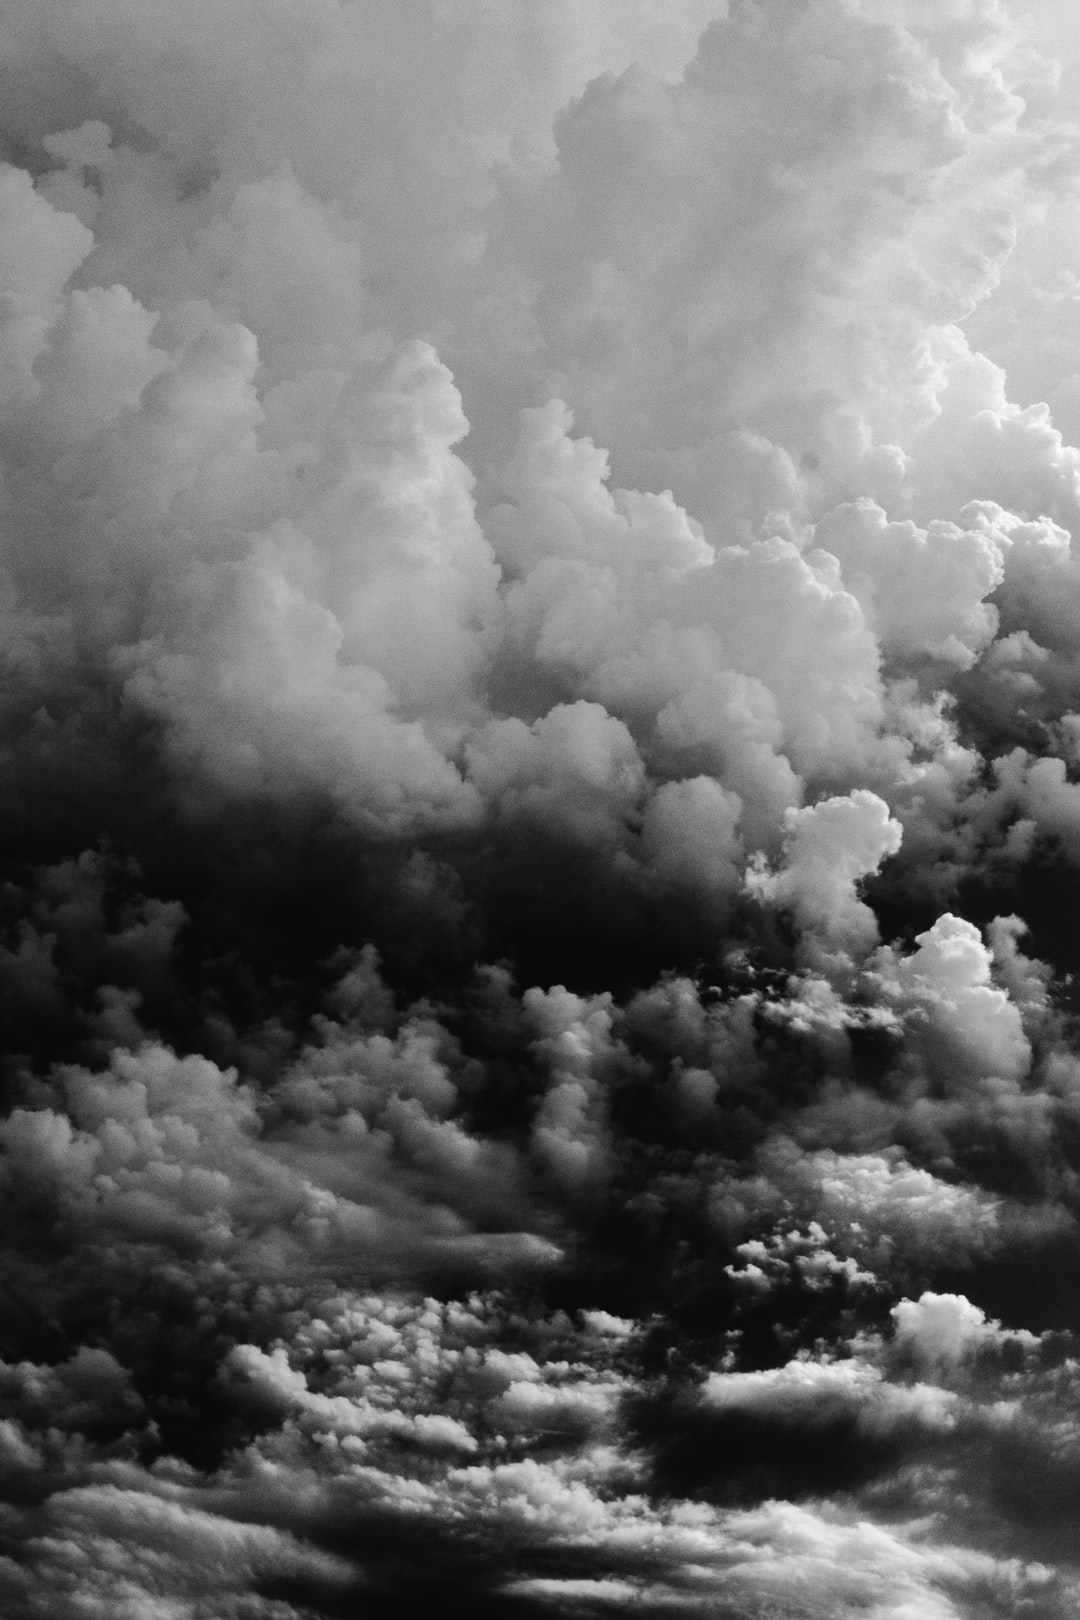 Black And White Wallpapers Free Hd Download 500 Hq Unsplash,Best Exterior House Paint Colors In India